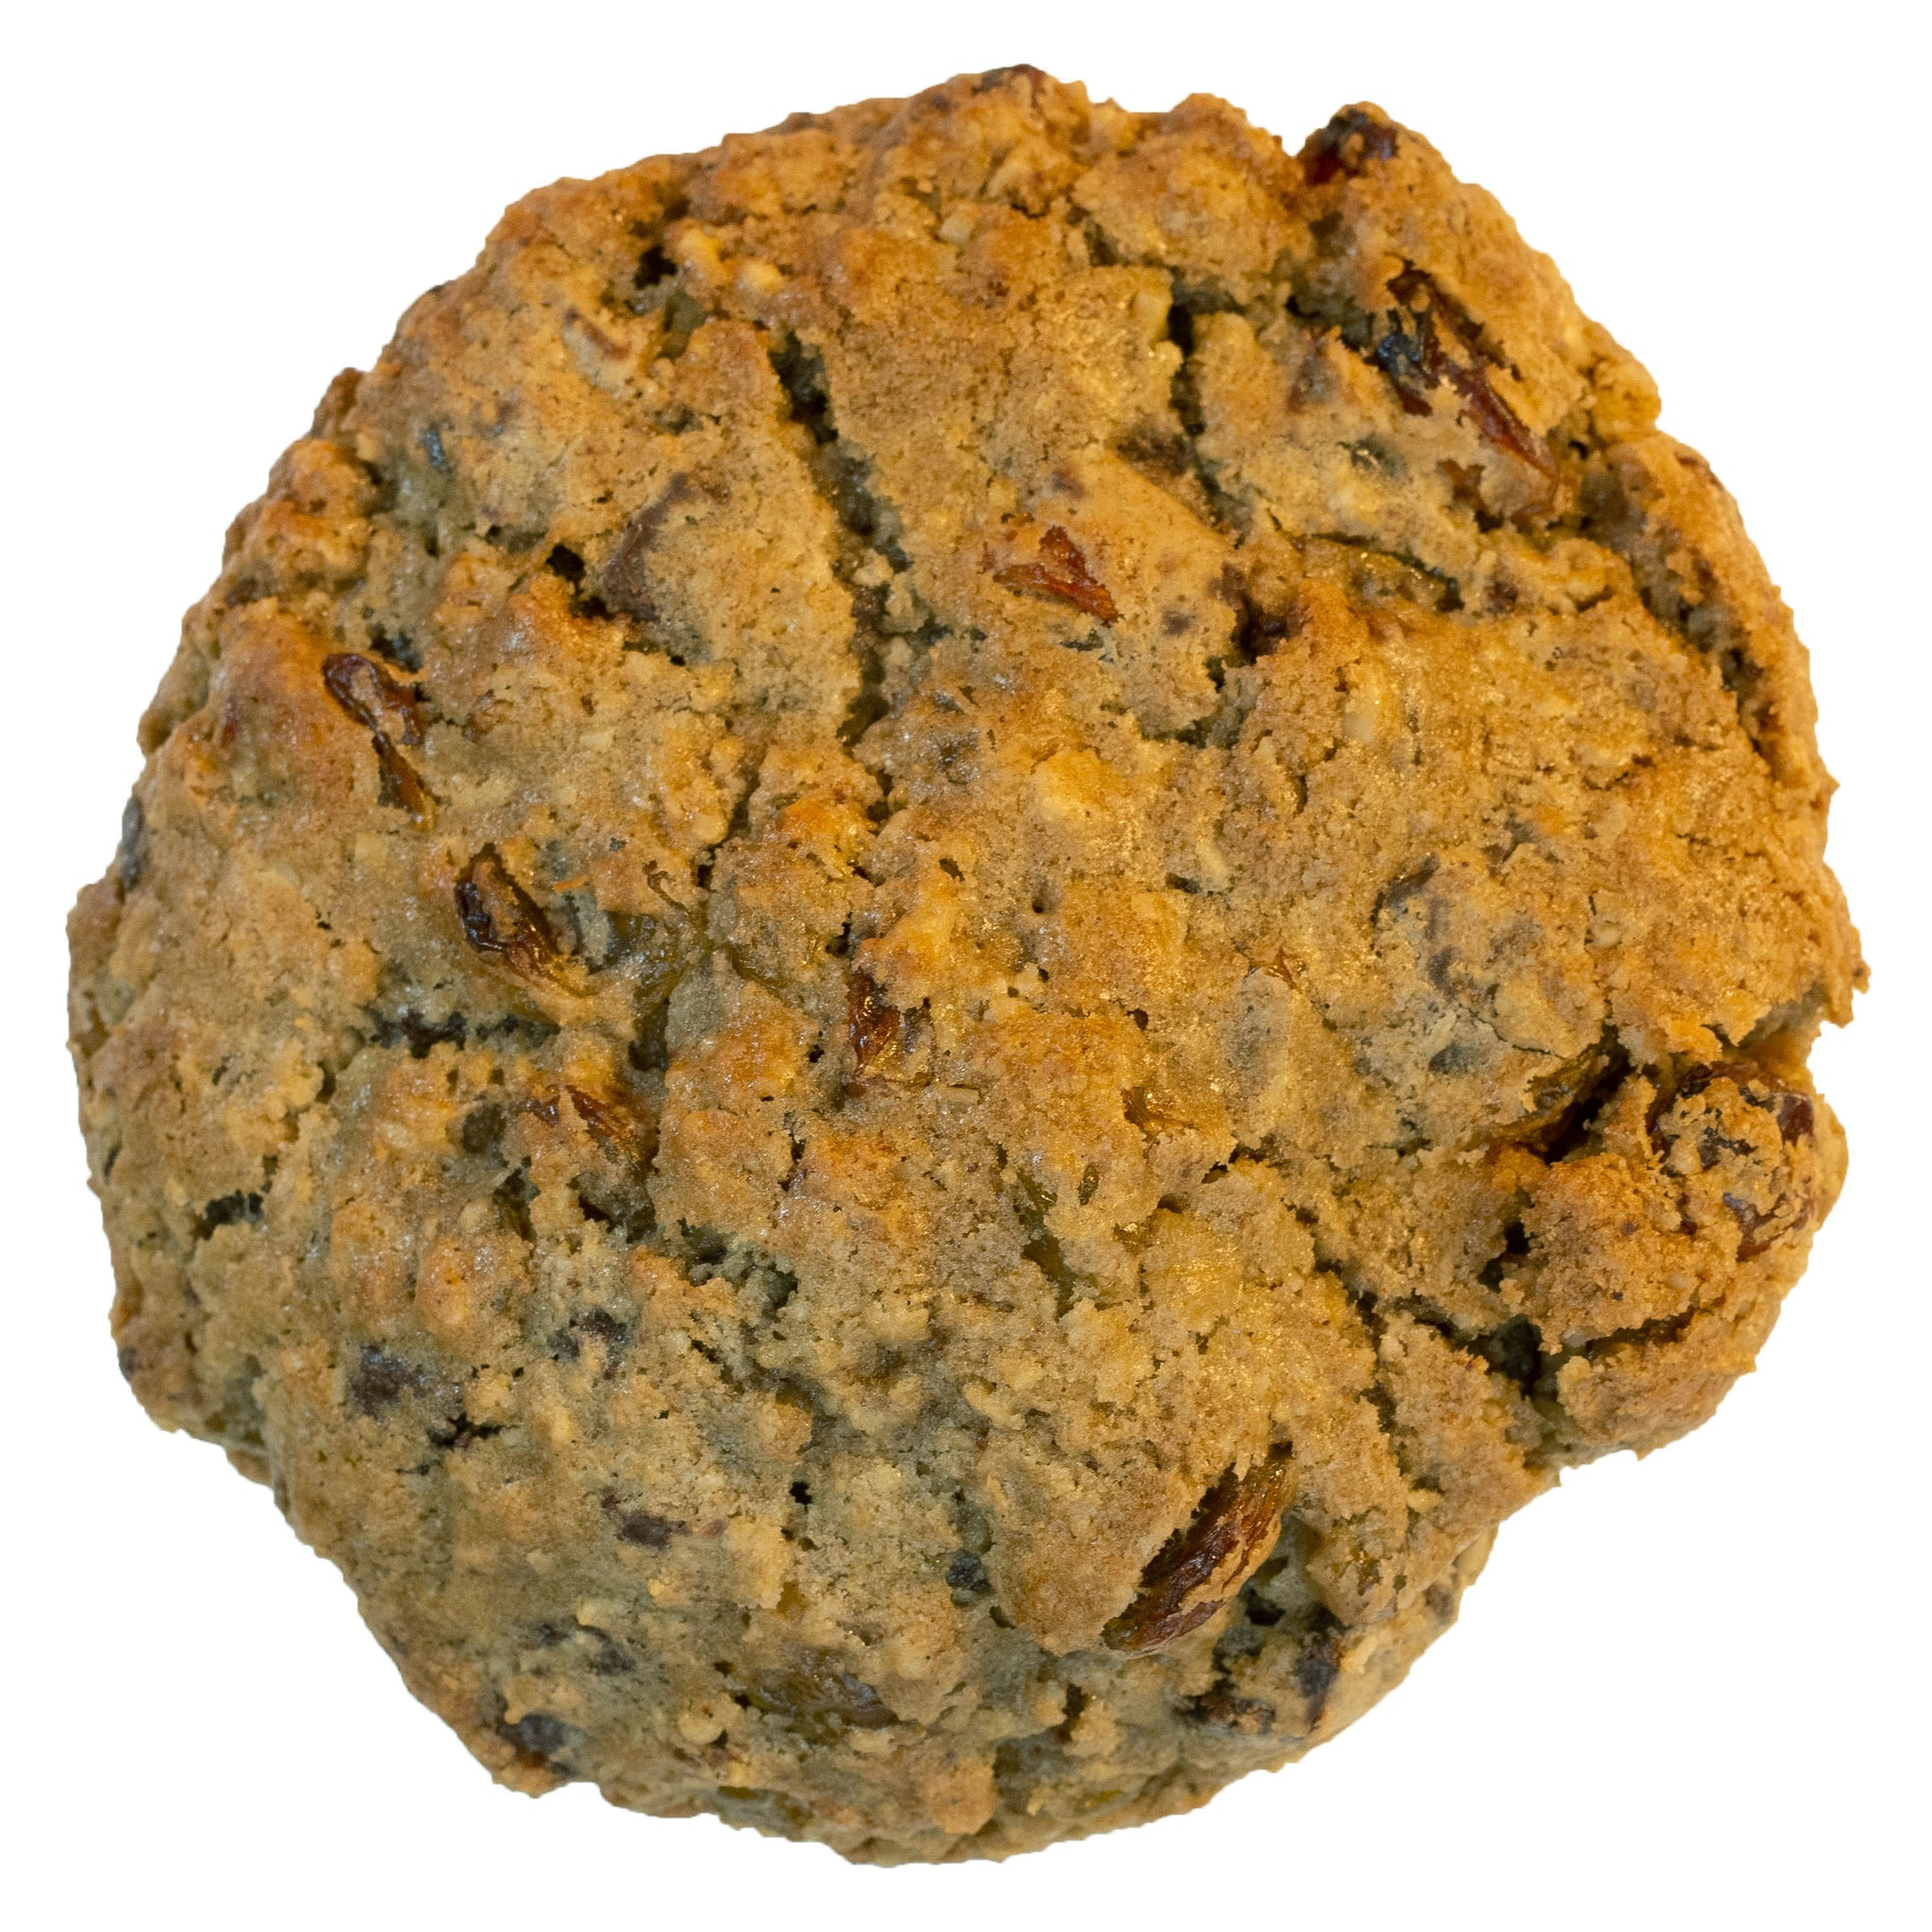 OATMEAL RAISIN CHOCOLATE CHUNK Cookie